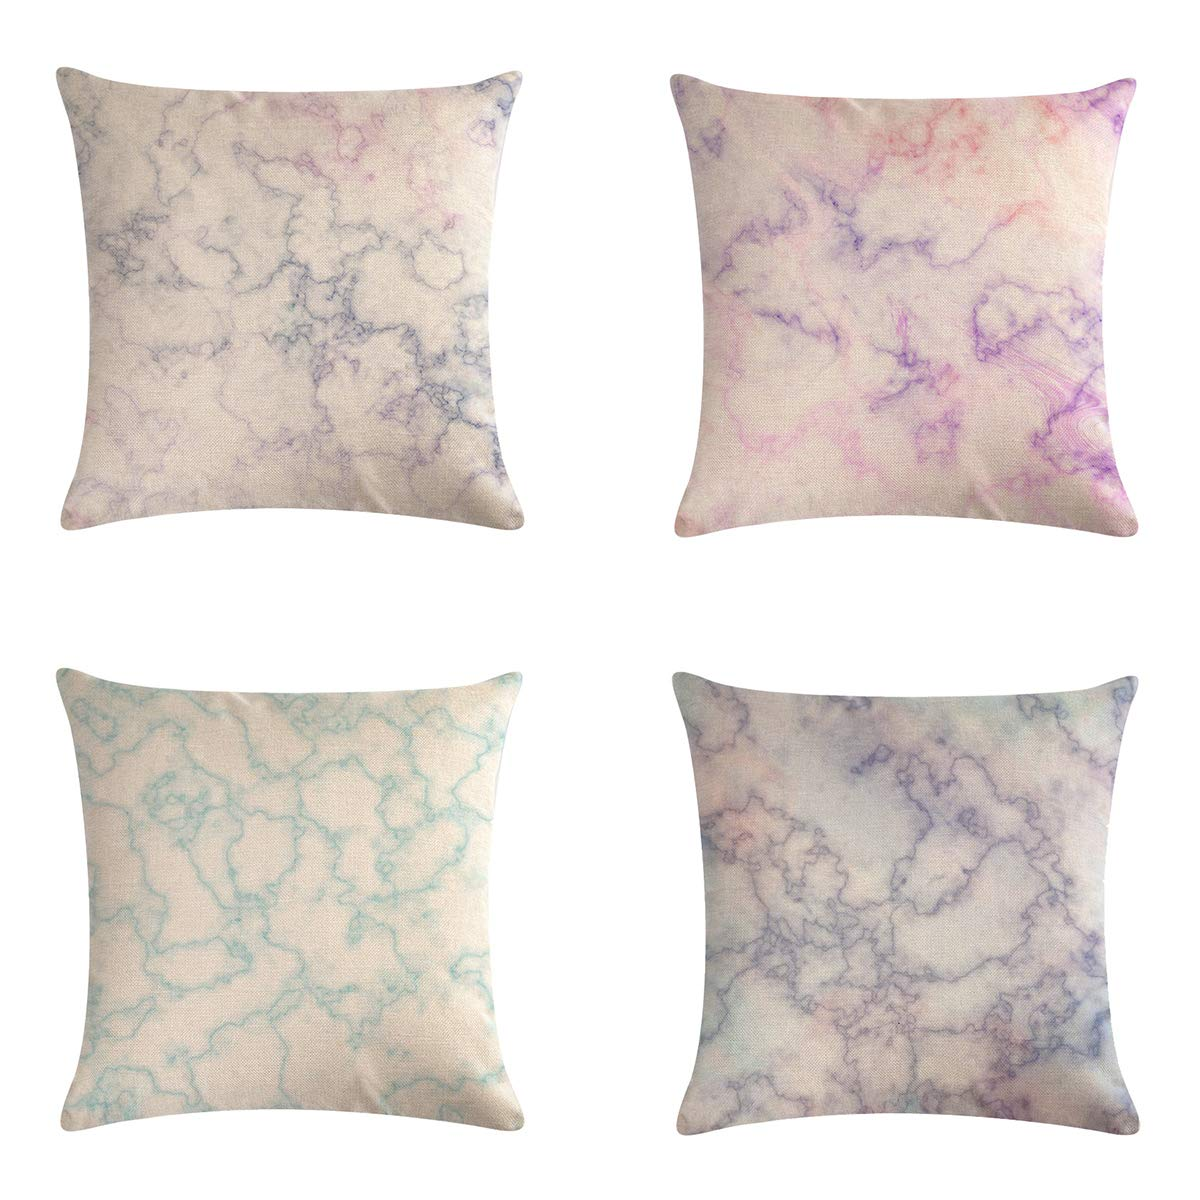 XIECCX Throw Pillow Covers Modern Marble Pattern Simple Nordic Style Decorative Pillowcases 4 Pack- Linen Cotton Cushion for Sofa,Bedroom,Chair,Car Seat,Farmhouse 18 x 18